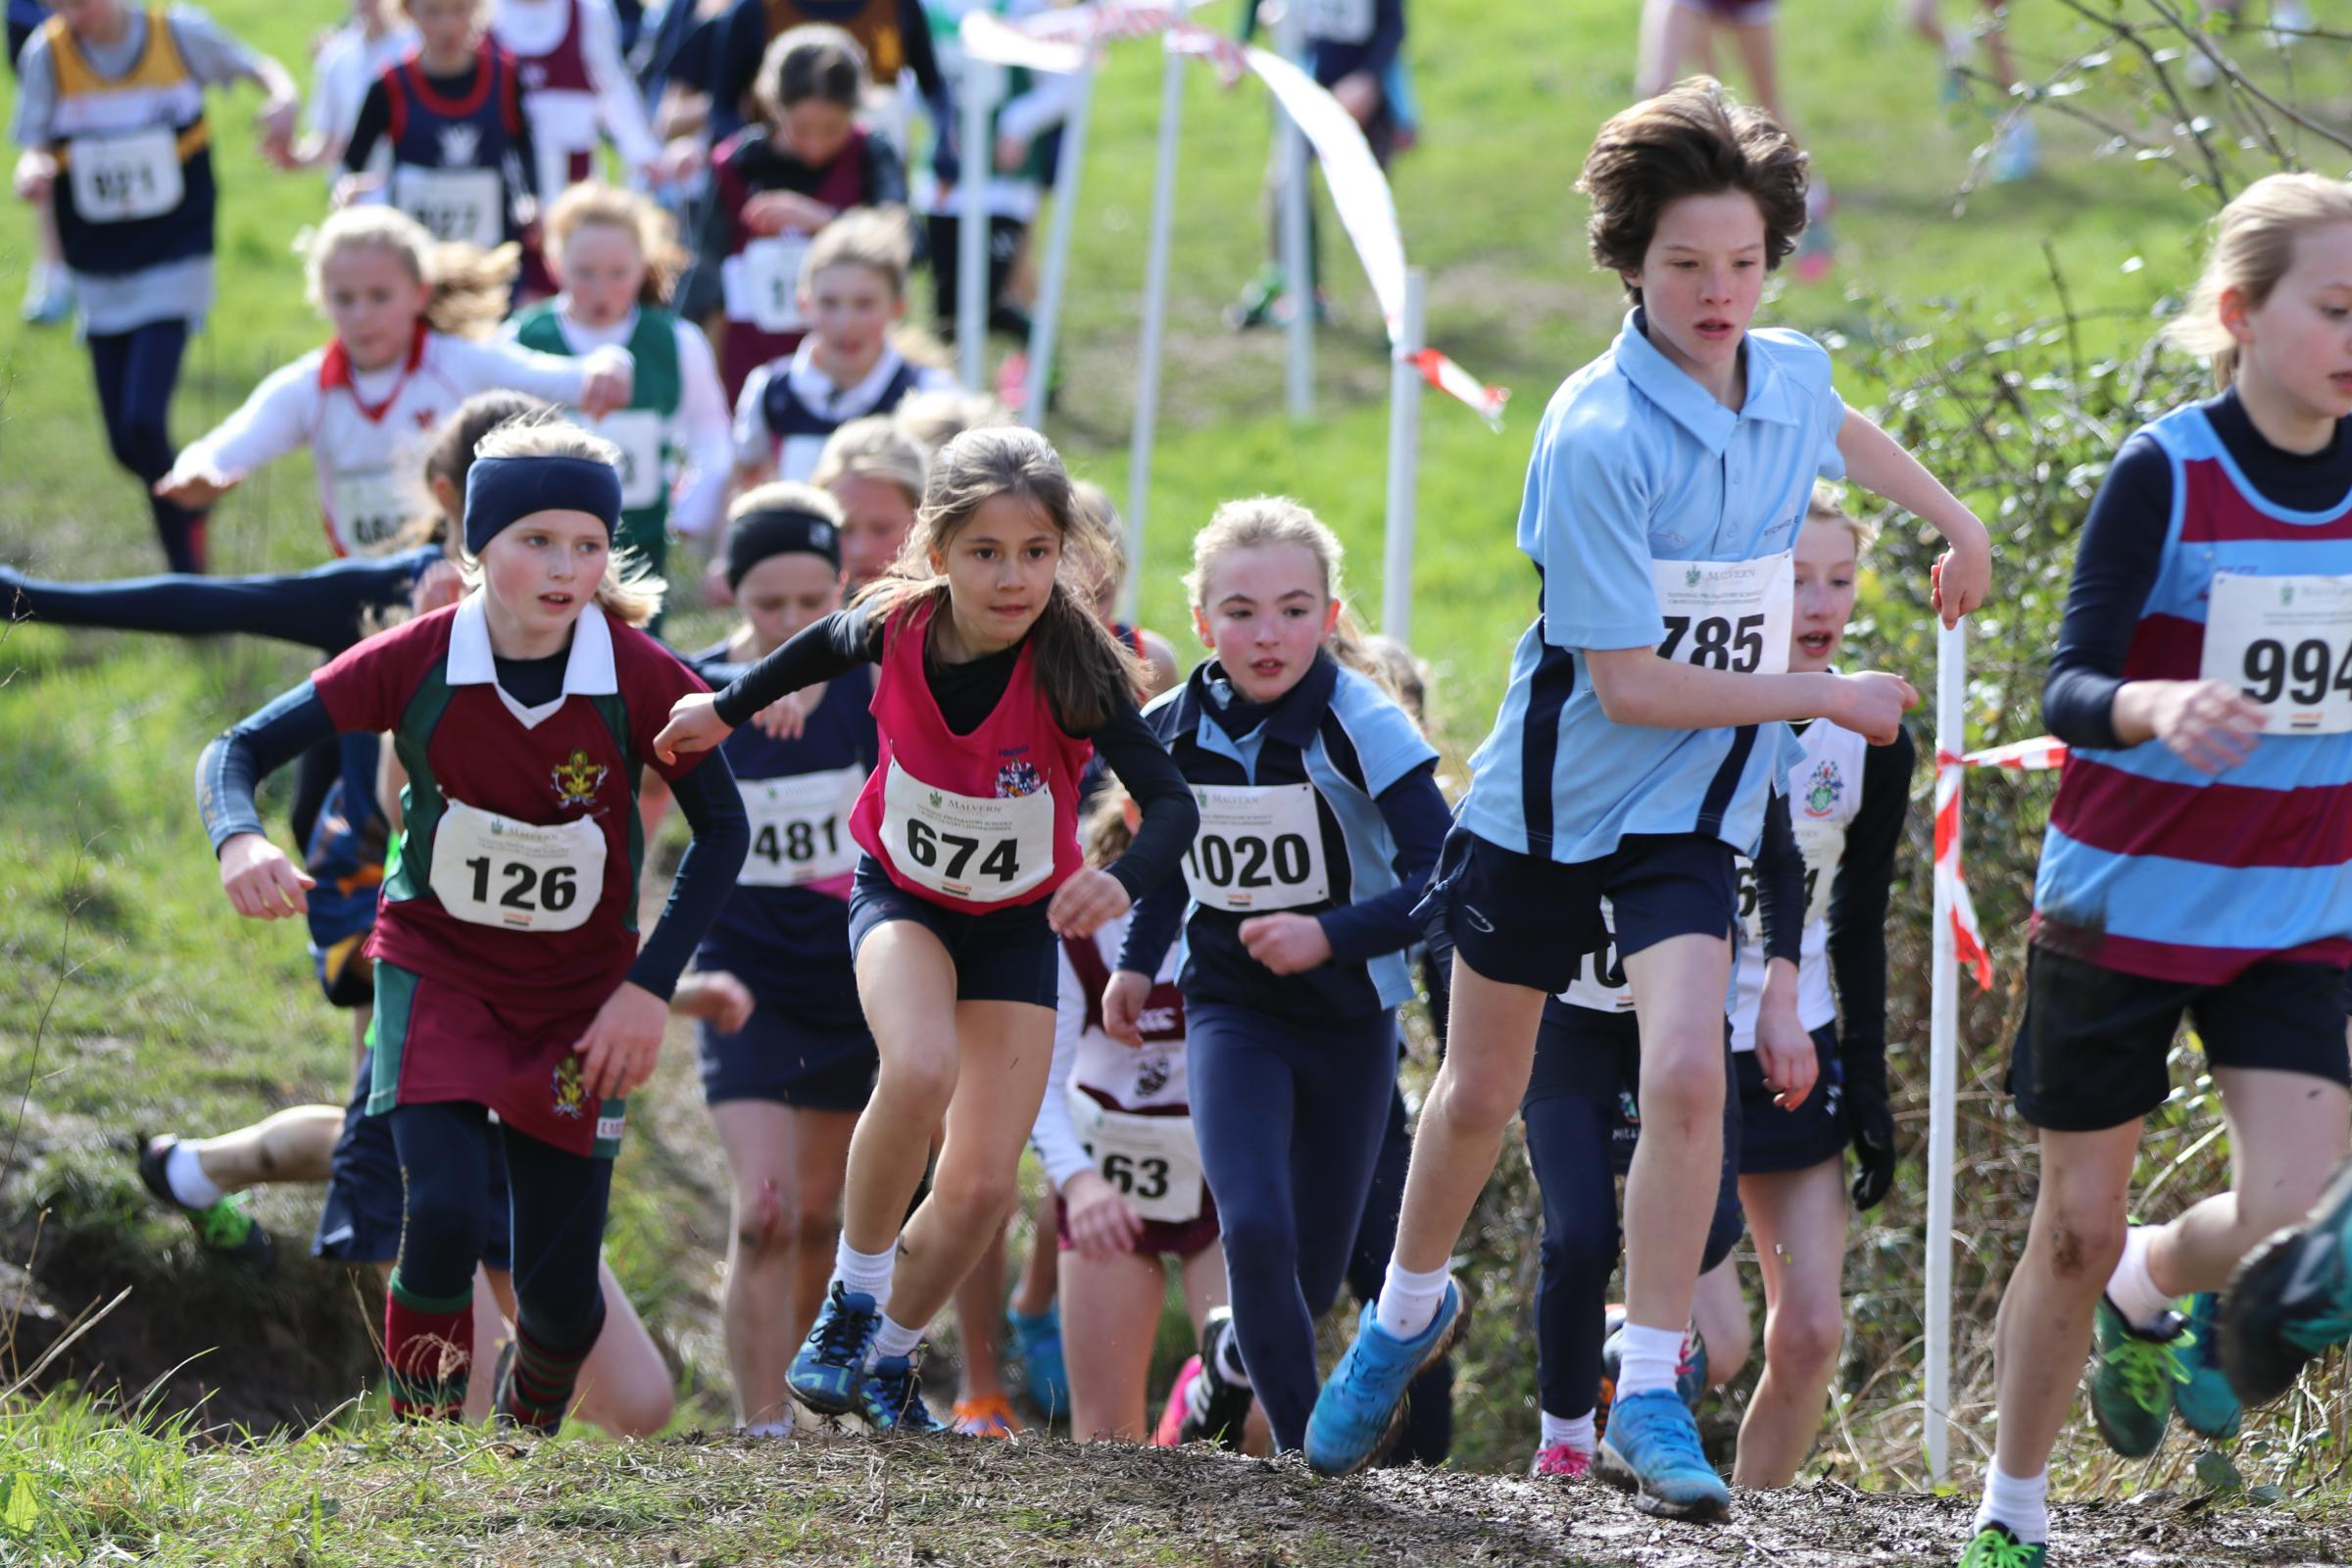 Competitors at the National Preparatory Schools' Cross-Country Championships. Picture: MALVERN COLLEGE